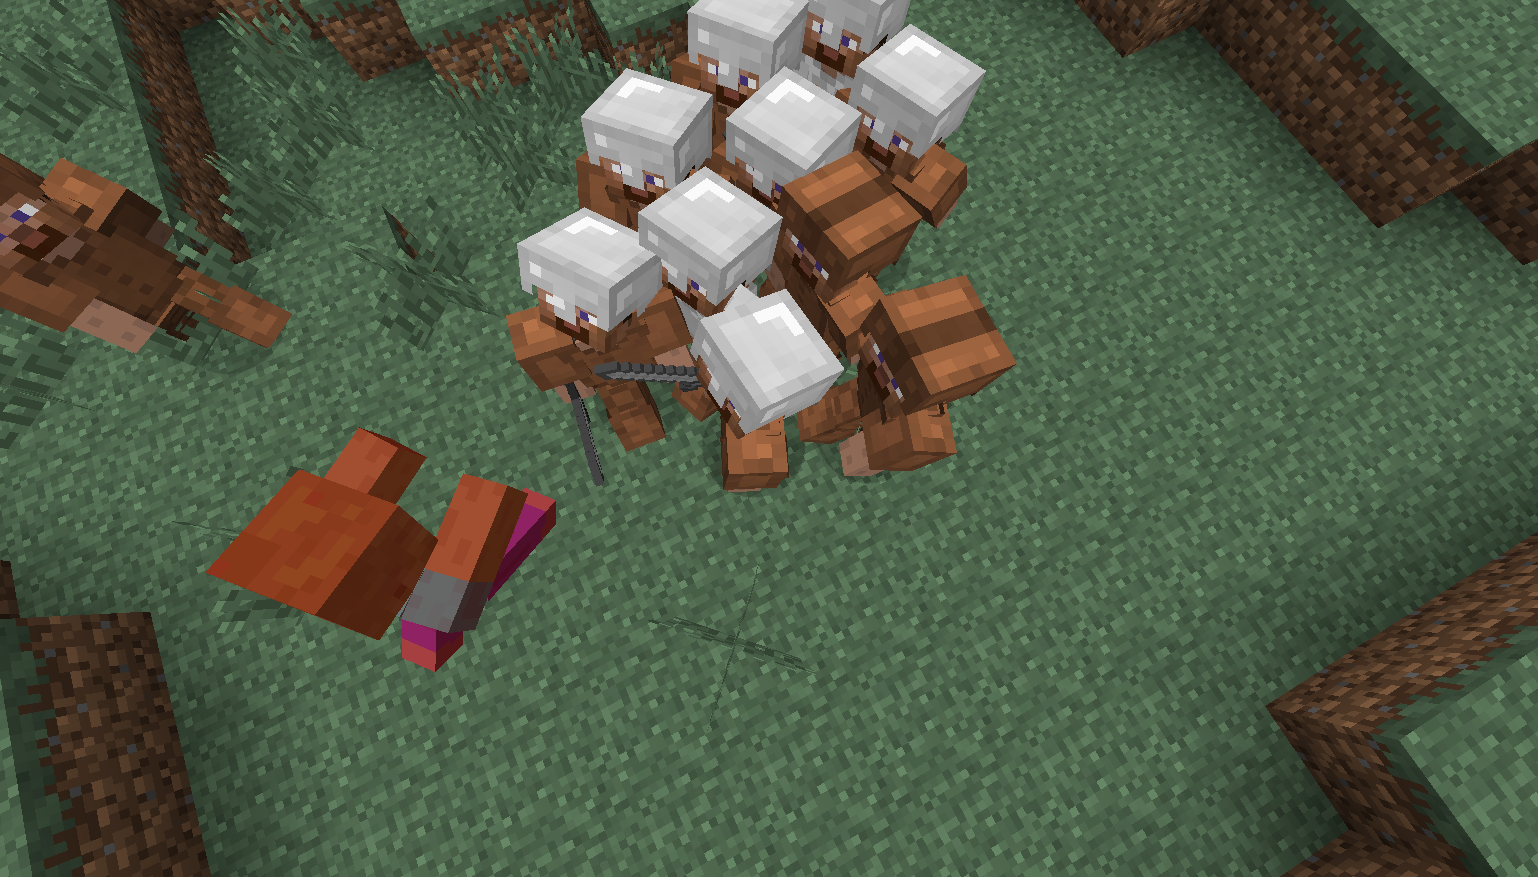 http://planetaminecraft.com/wp-content/uploads/2013/03/b7680__Defensive-Villagers-Mod-1.png